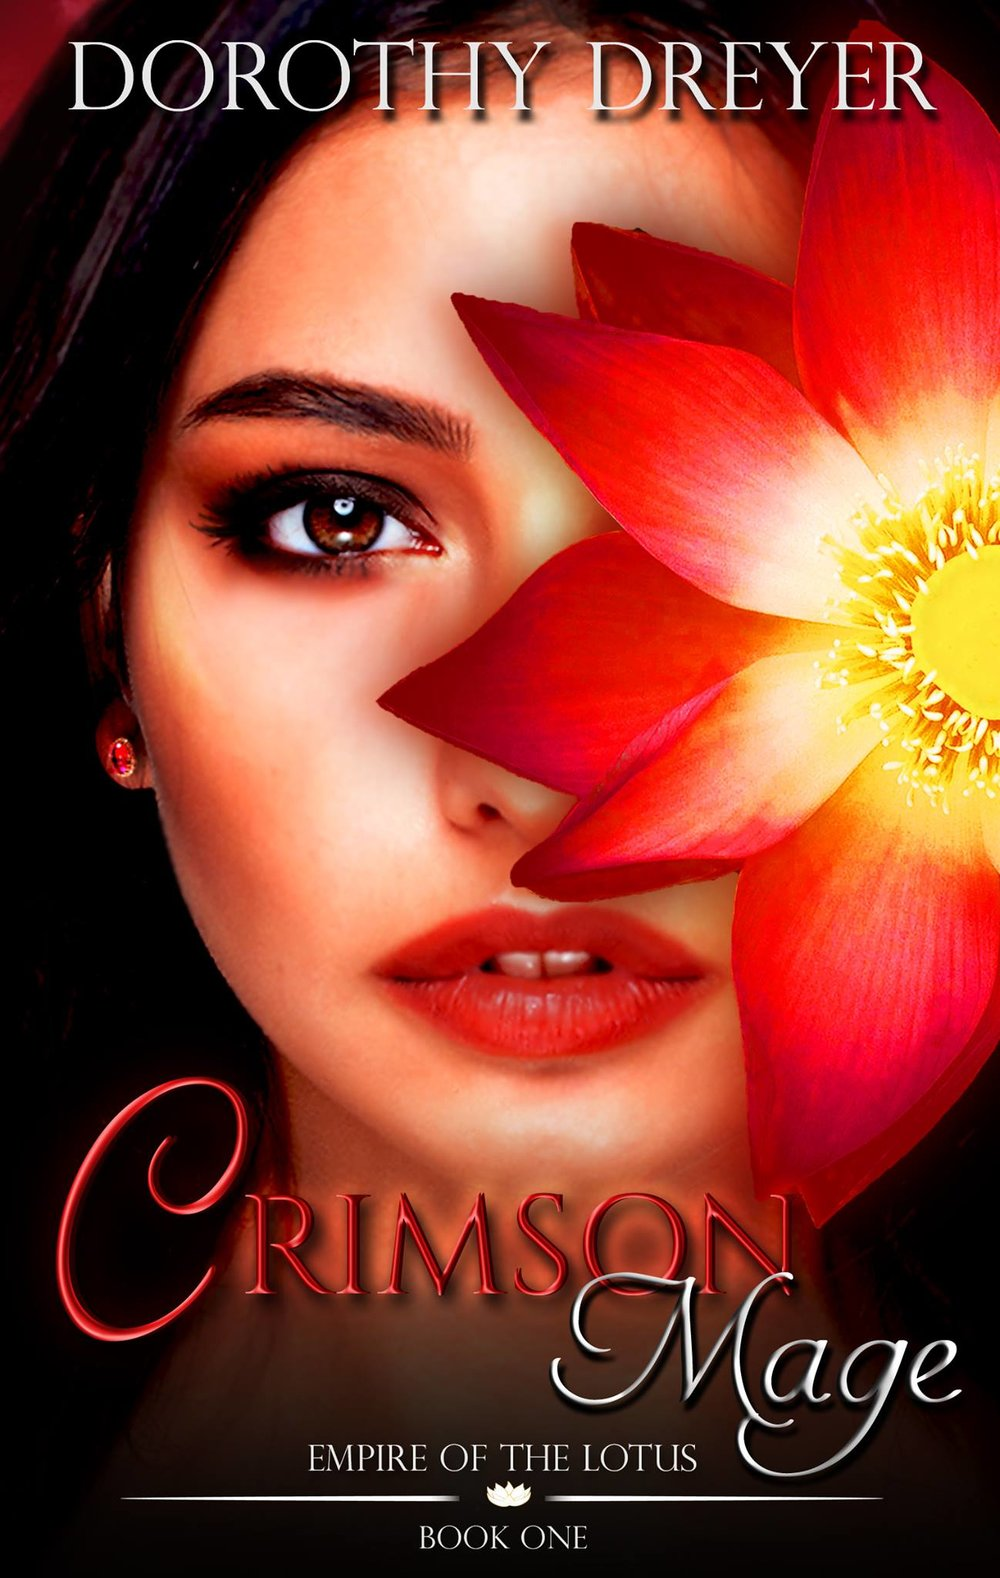 CRIMSON MAGE    Dorothy Dreyer    The legend goes …  The ancient deity Kashmeru knew only one true love—the Lotus empress Lakshmi, who in his eyes possessed all beauty and grace the universe could hold, but Lakshmi knew that Kashmeru's spirit was not pure, for within him dwelled an evil so corrupt it could destroy the universe.  And when she denied him her love, destroying the universe was the very thing he vowed to do.